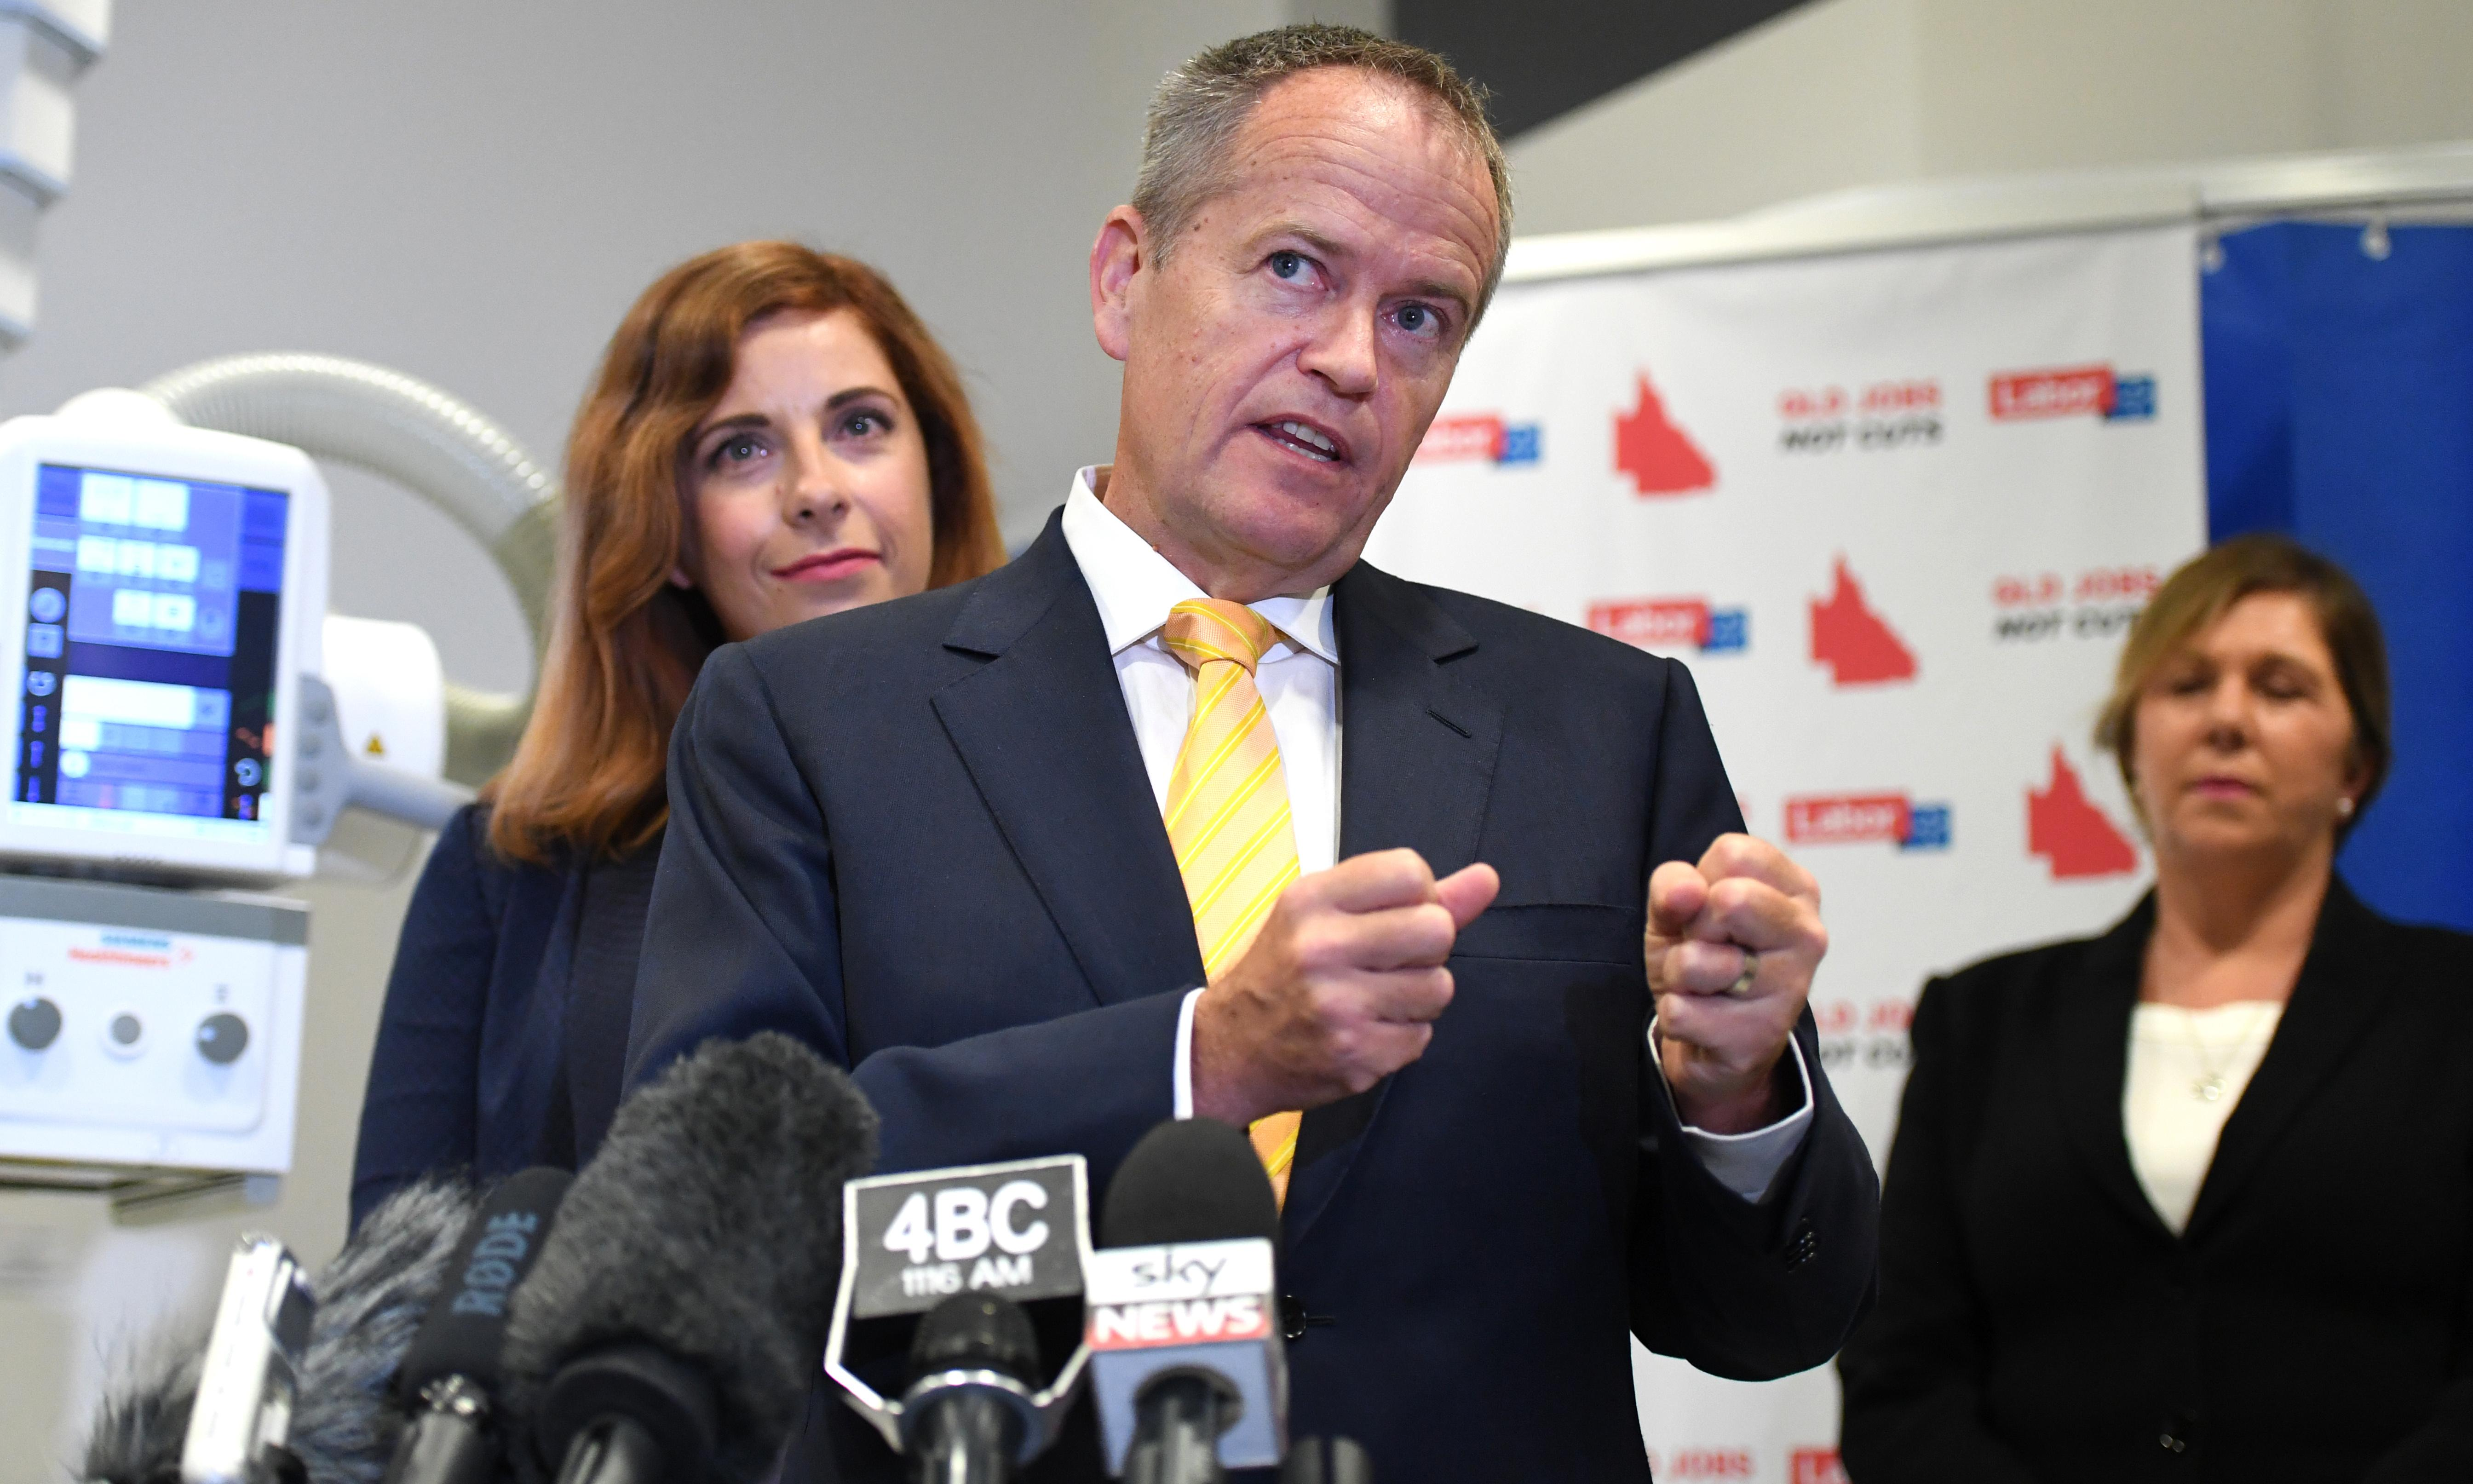 Bill Shorten to make local jobs pitch as Queensland bus tour continues